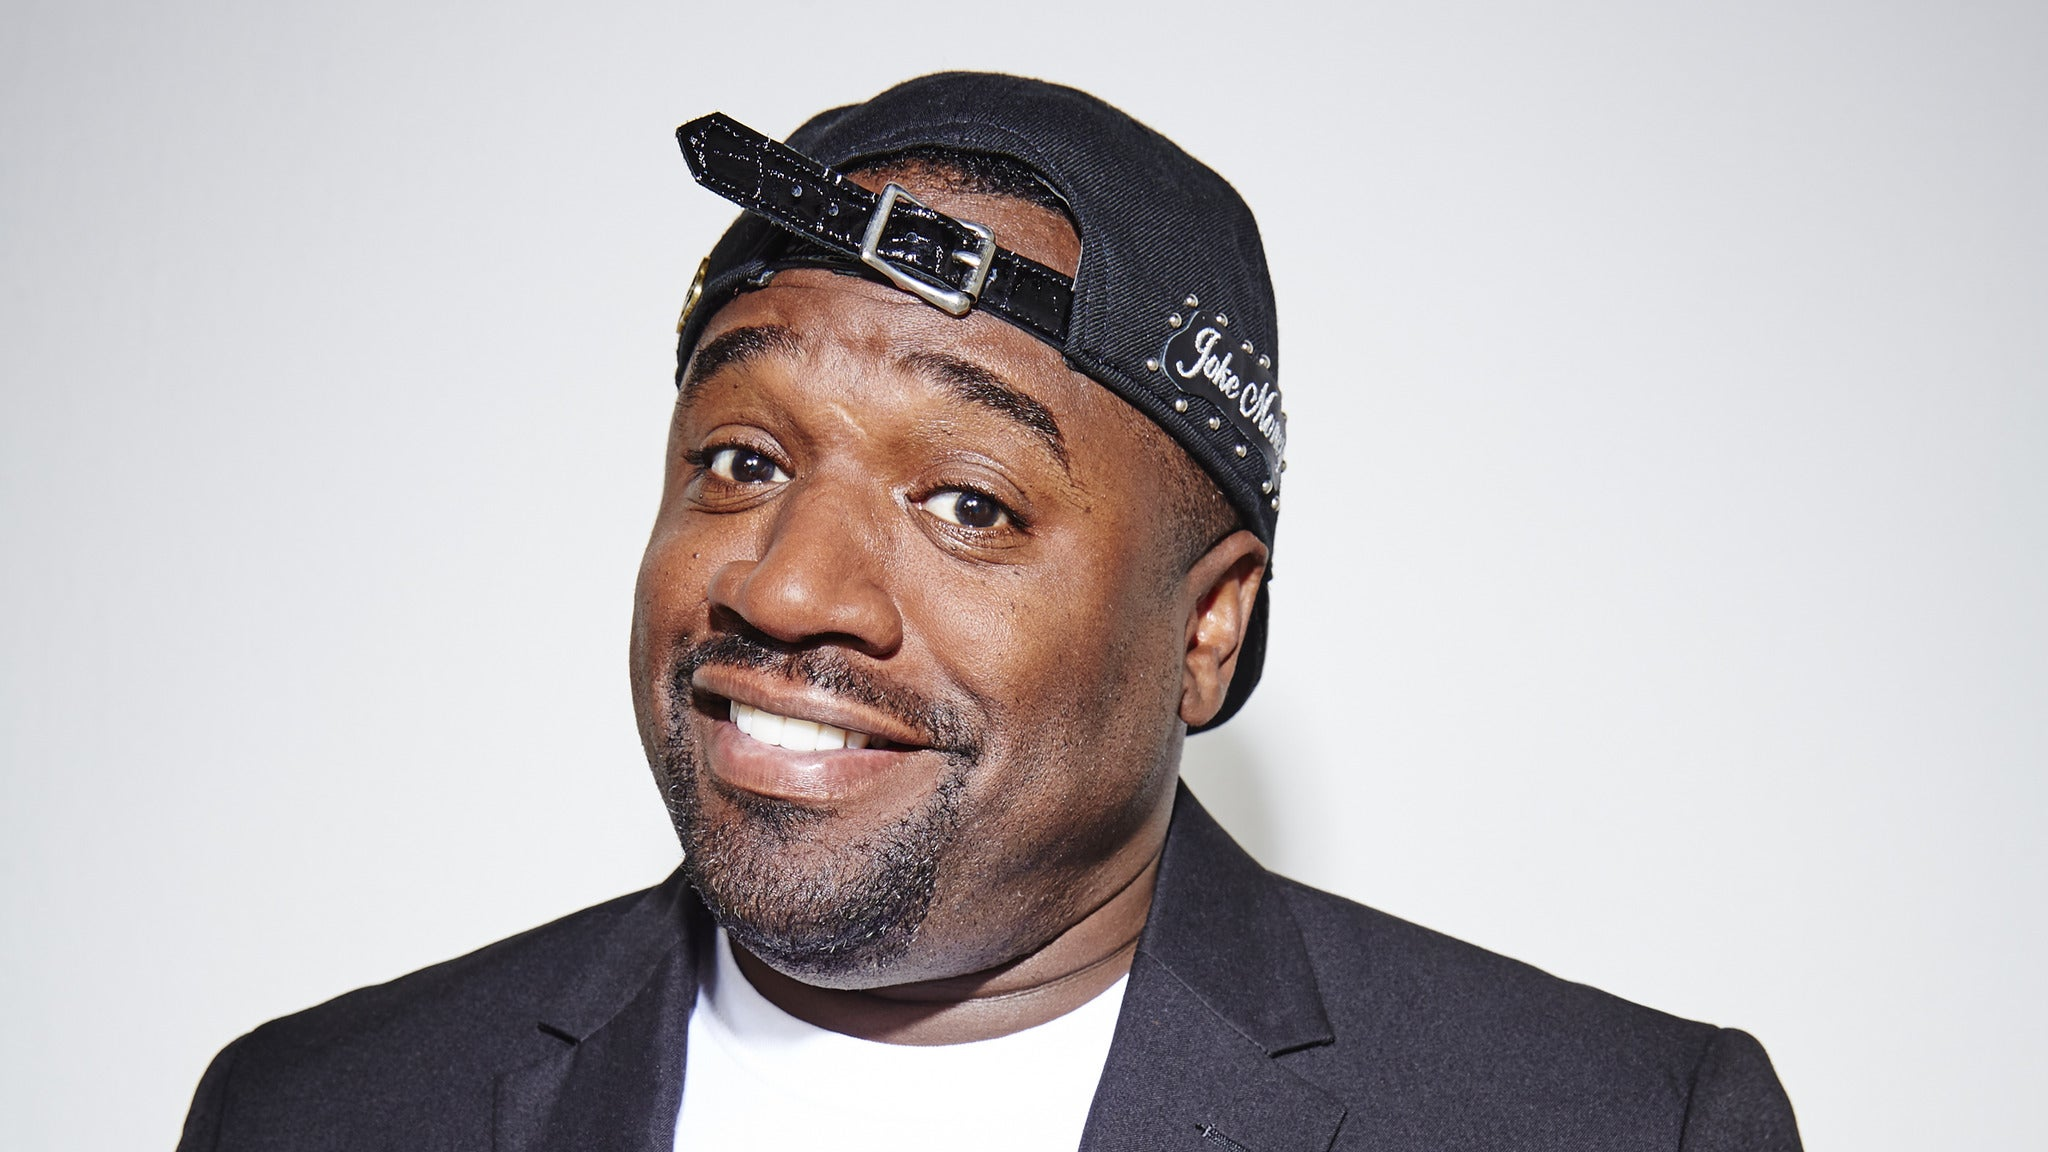 Corey Holcomb at Oxnard Levity Live - Oxnard, CA 93036